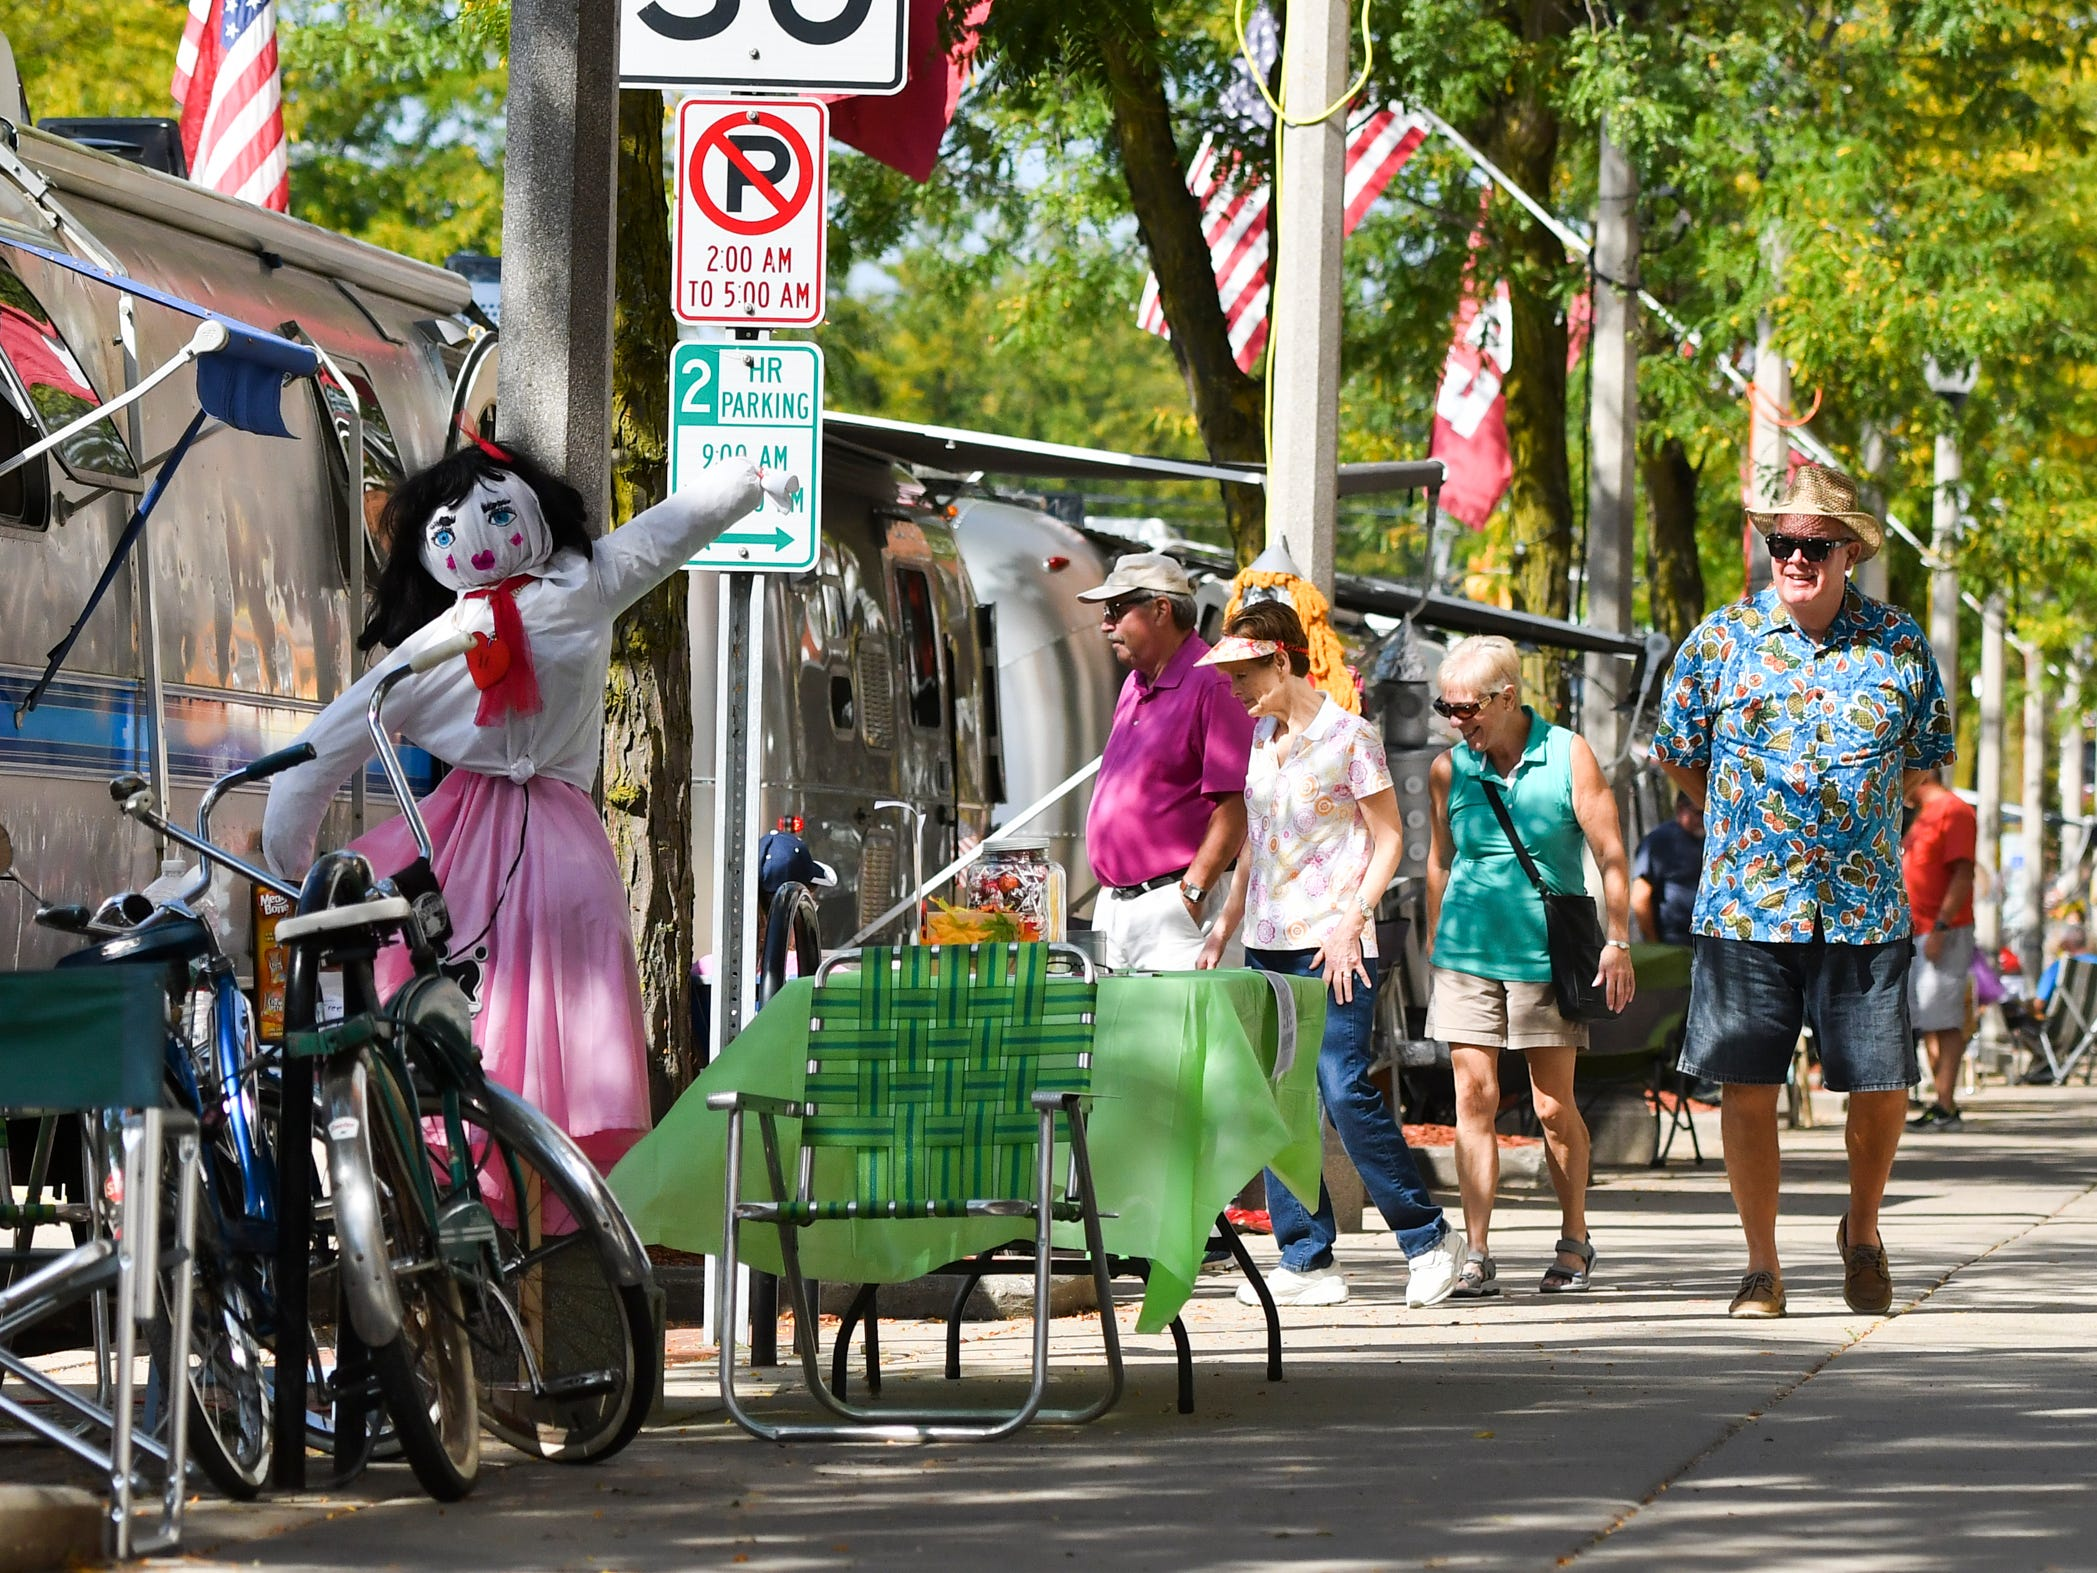 "The 7th annual Eaton Rapids Air event (formerly Urban Air) took place Sept. 13 - 15.  Over 100 Airstream motor homes lined Main St. in downtown Eaton Rapids.  This year's theme was ""Wizard of Oz,"" and campers decorated their home-away-from-home in regalia from the Wizard of Oz."